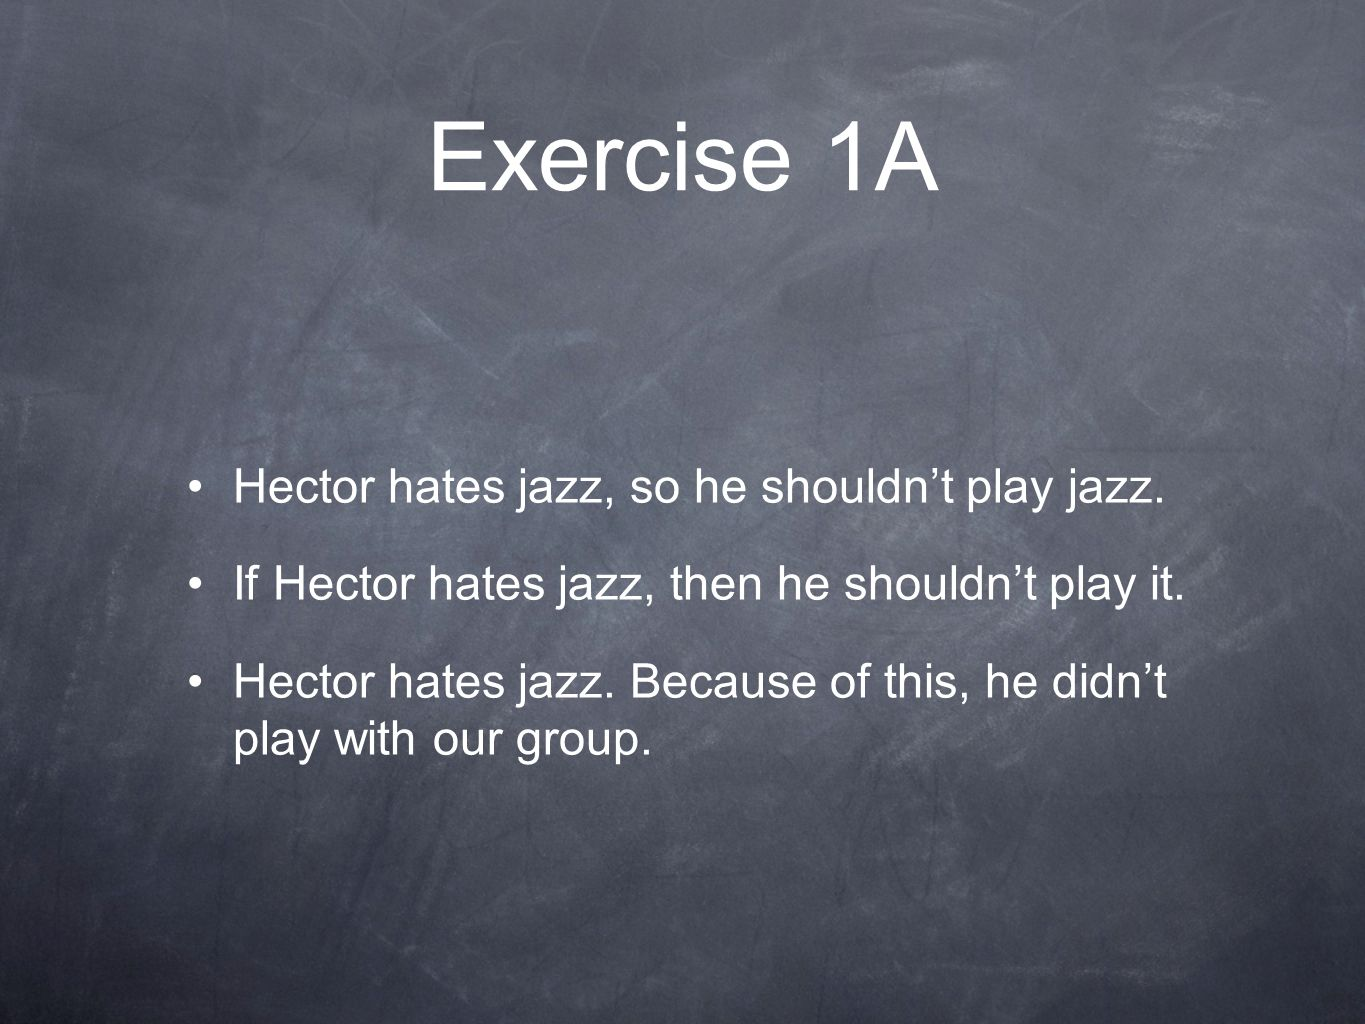 Exercise 1A Hector hates jazz, so he shouldn't play jazz.